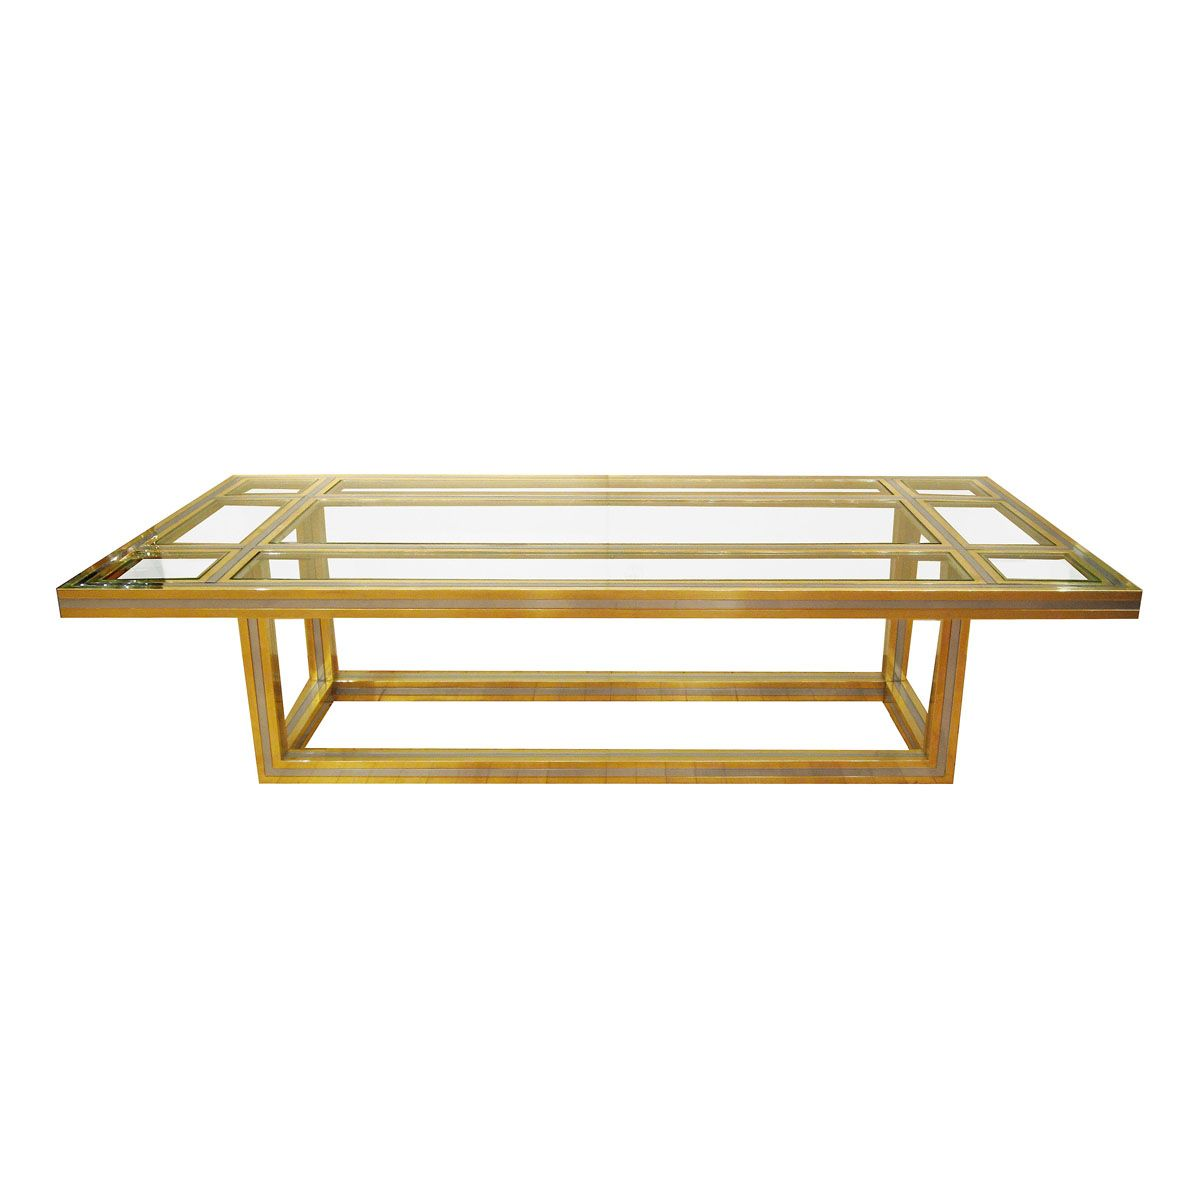 Brass And Stainless Steel Coffee Table With Glass Insets Coffee